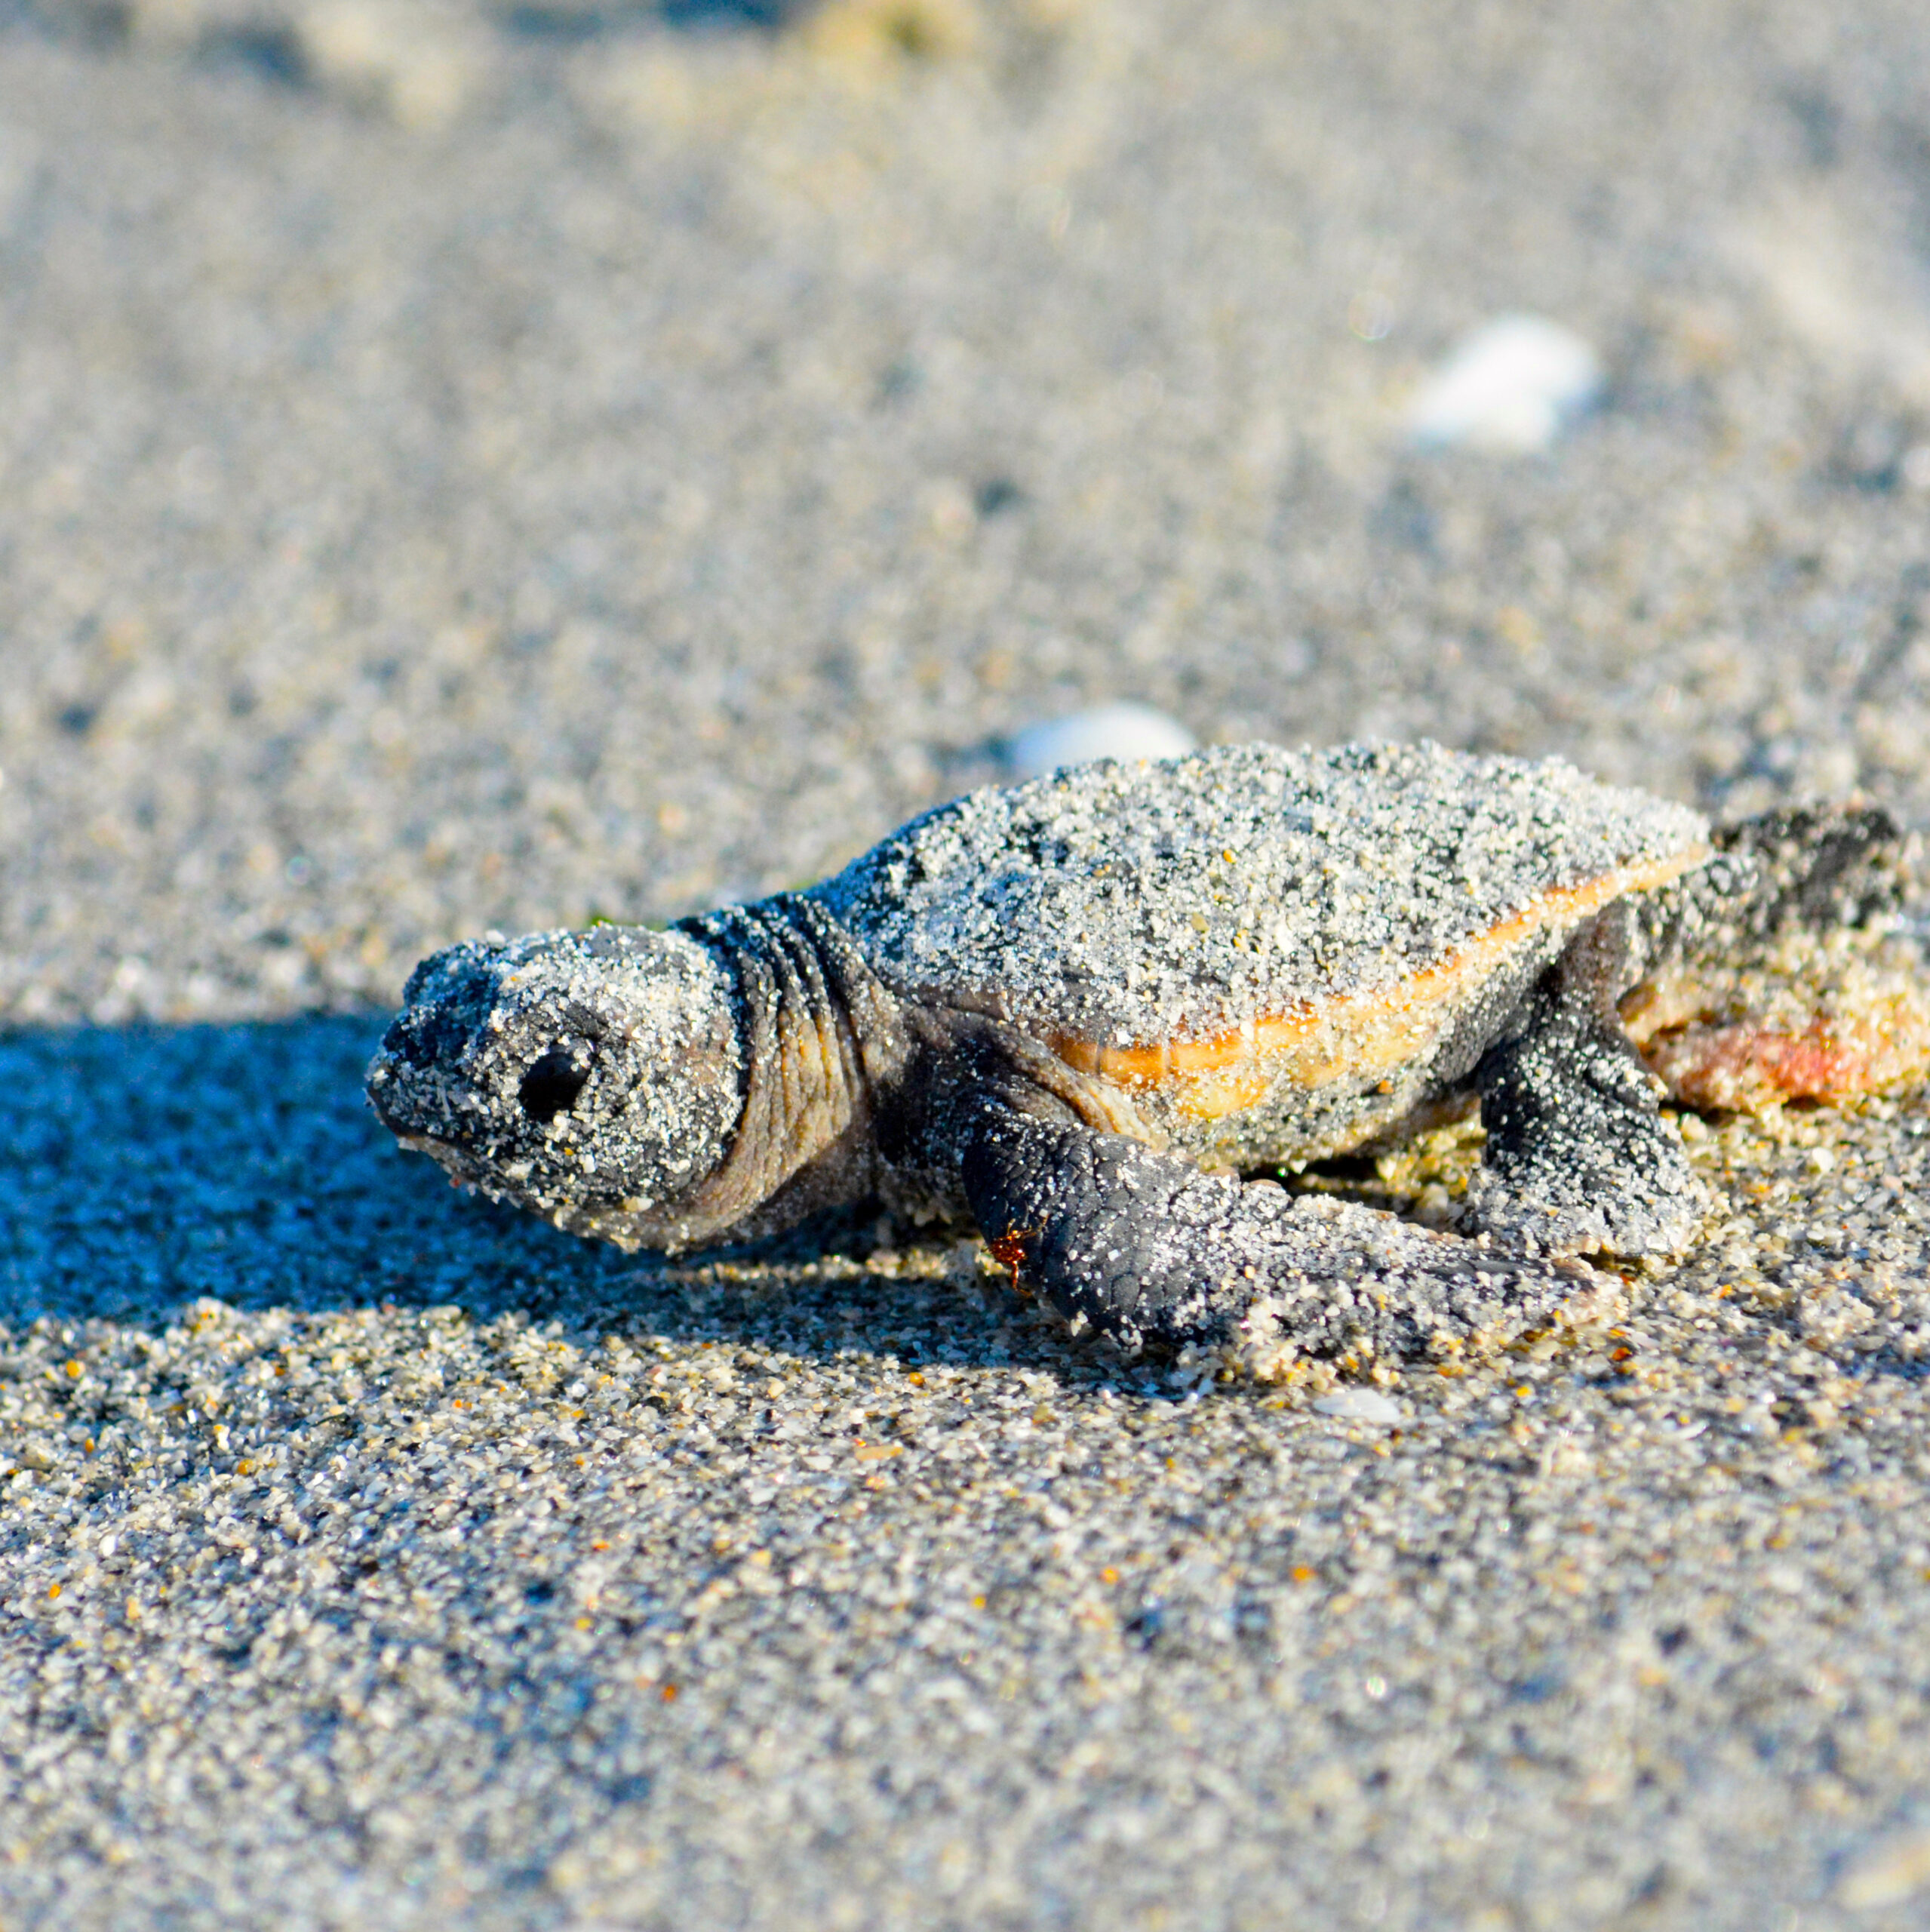 The very first steps of a loggerhead hatchling. Photograph by Jean-Lou Justine/CC-BY-SA 4.0.